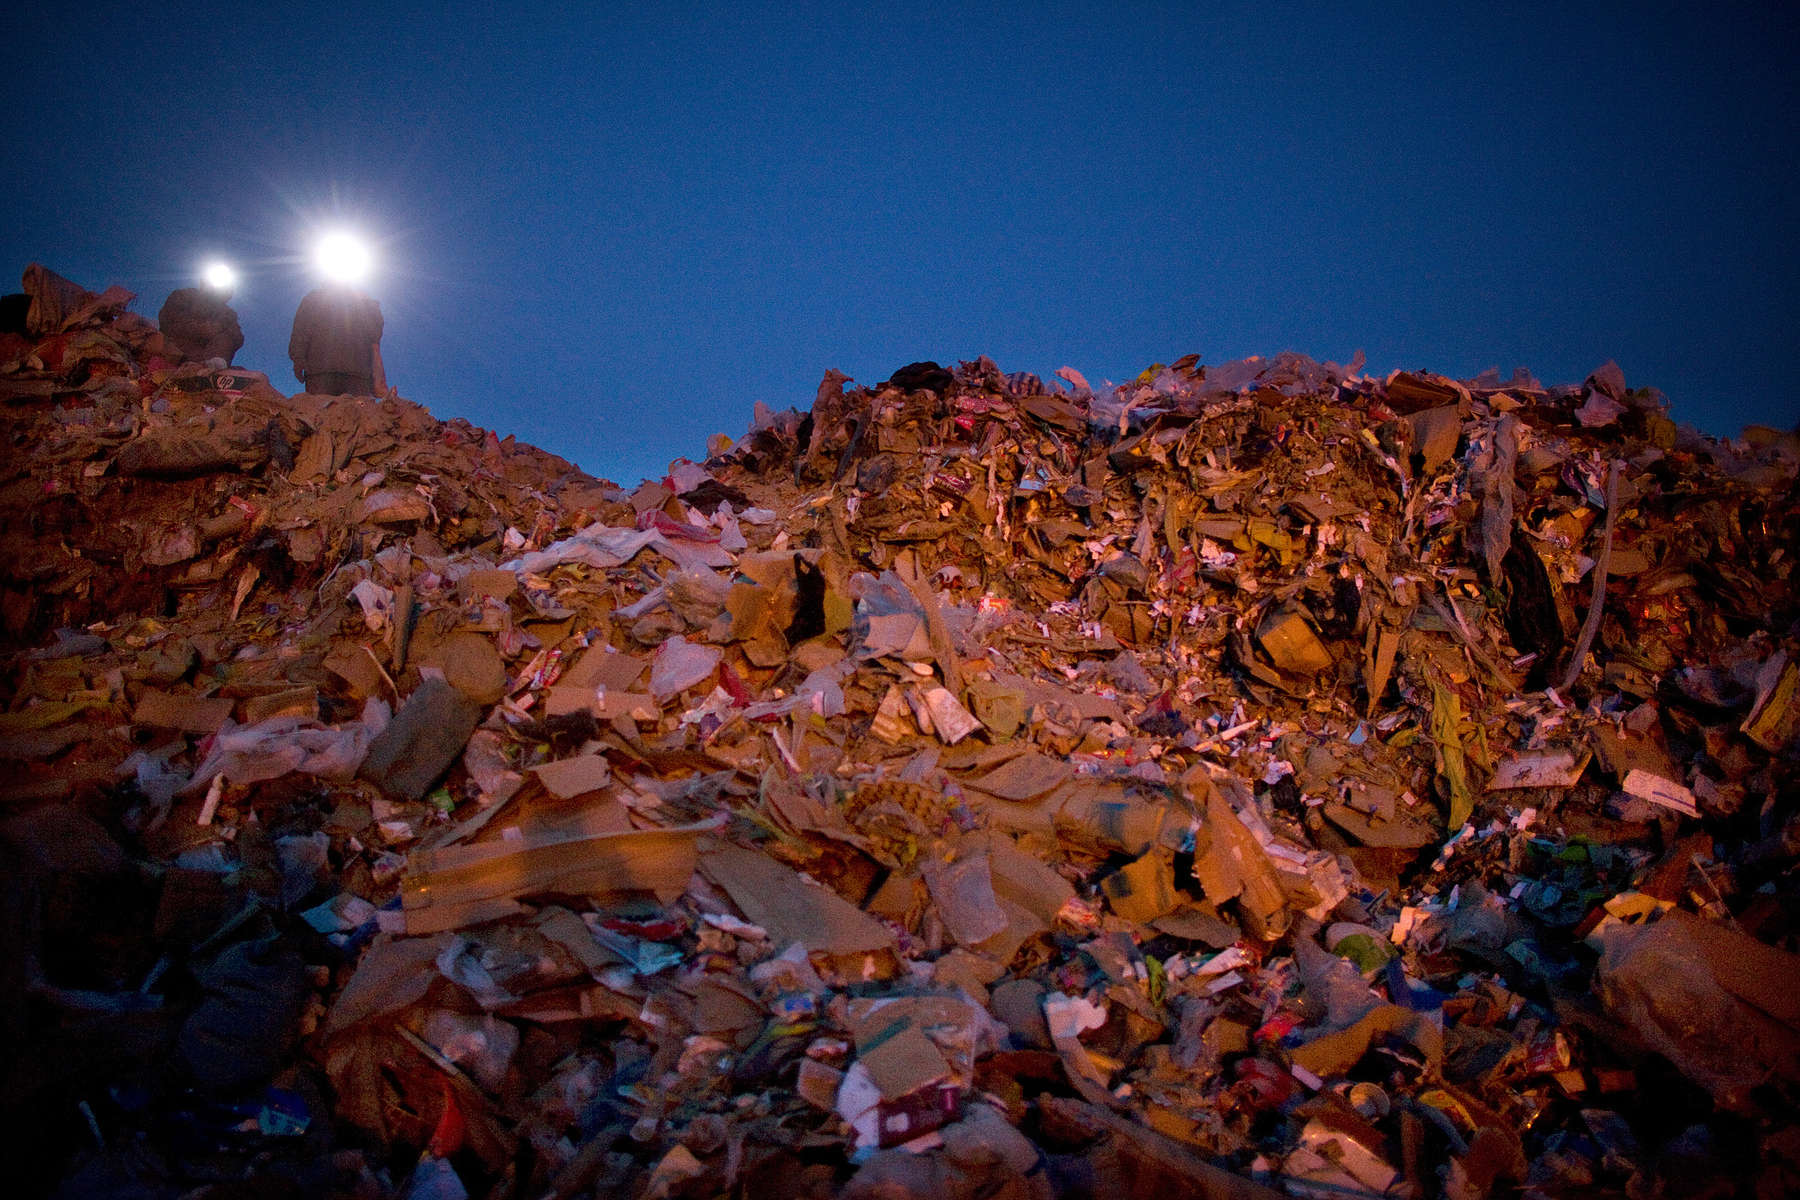 ULAAN BAATAR, MONGOLIA-MARCH 5 :  Mongolian men wear head lamps collecting and recycling after sunset at a dump March 5, 2010  in Ulaan Baatar, Mongolia. The average money made per day is $6.50 US. Working at the garbage dump means extreme hardship, long hours outside in frigid temperatures dropping below -25C in the Winter as Mongolia experienced one of the worst Winters in 30 years. Presently the government has declared an emergency requiring foreign aid to alleviate the impact of the {quote} Zud{quote} ( Mongolian term for a multiple natural disaster) caused by bitter cold and thick snow. Currently 1.5 million goats,  921,000 sheep, 169,000 cows and yaks, 89,000 horses and 1,500 camels had died according to the various UN agency reports. Many Mongolians have immigrated to the capitol city from the far away provinces seeking employment, living in rented traditional circular felt yurts with no running water or electricity.(Photo by Paula Bronstein /Getty Images)